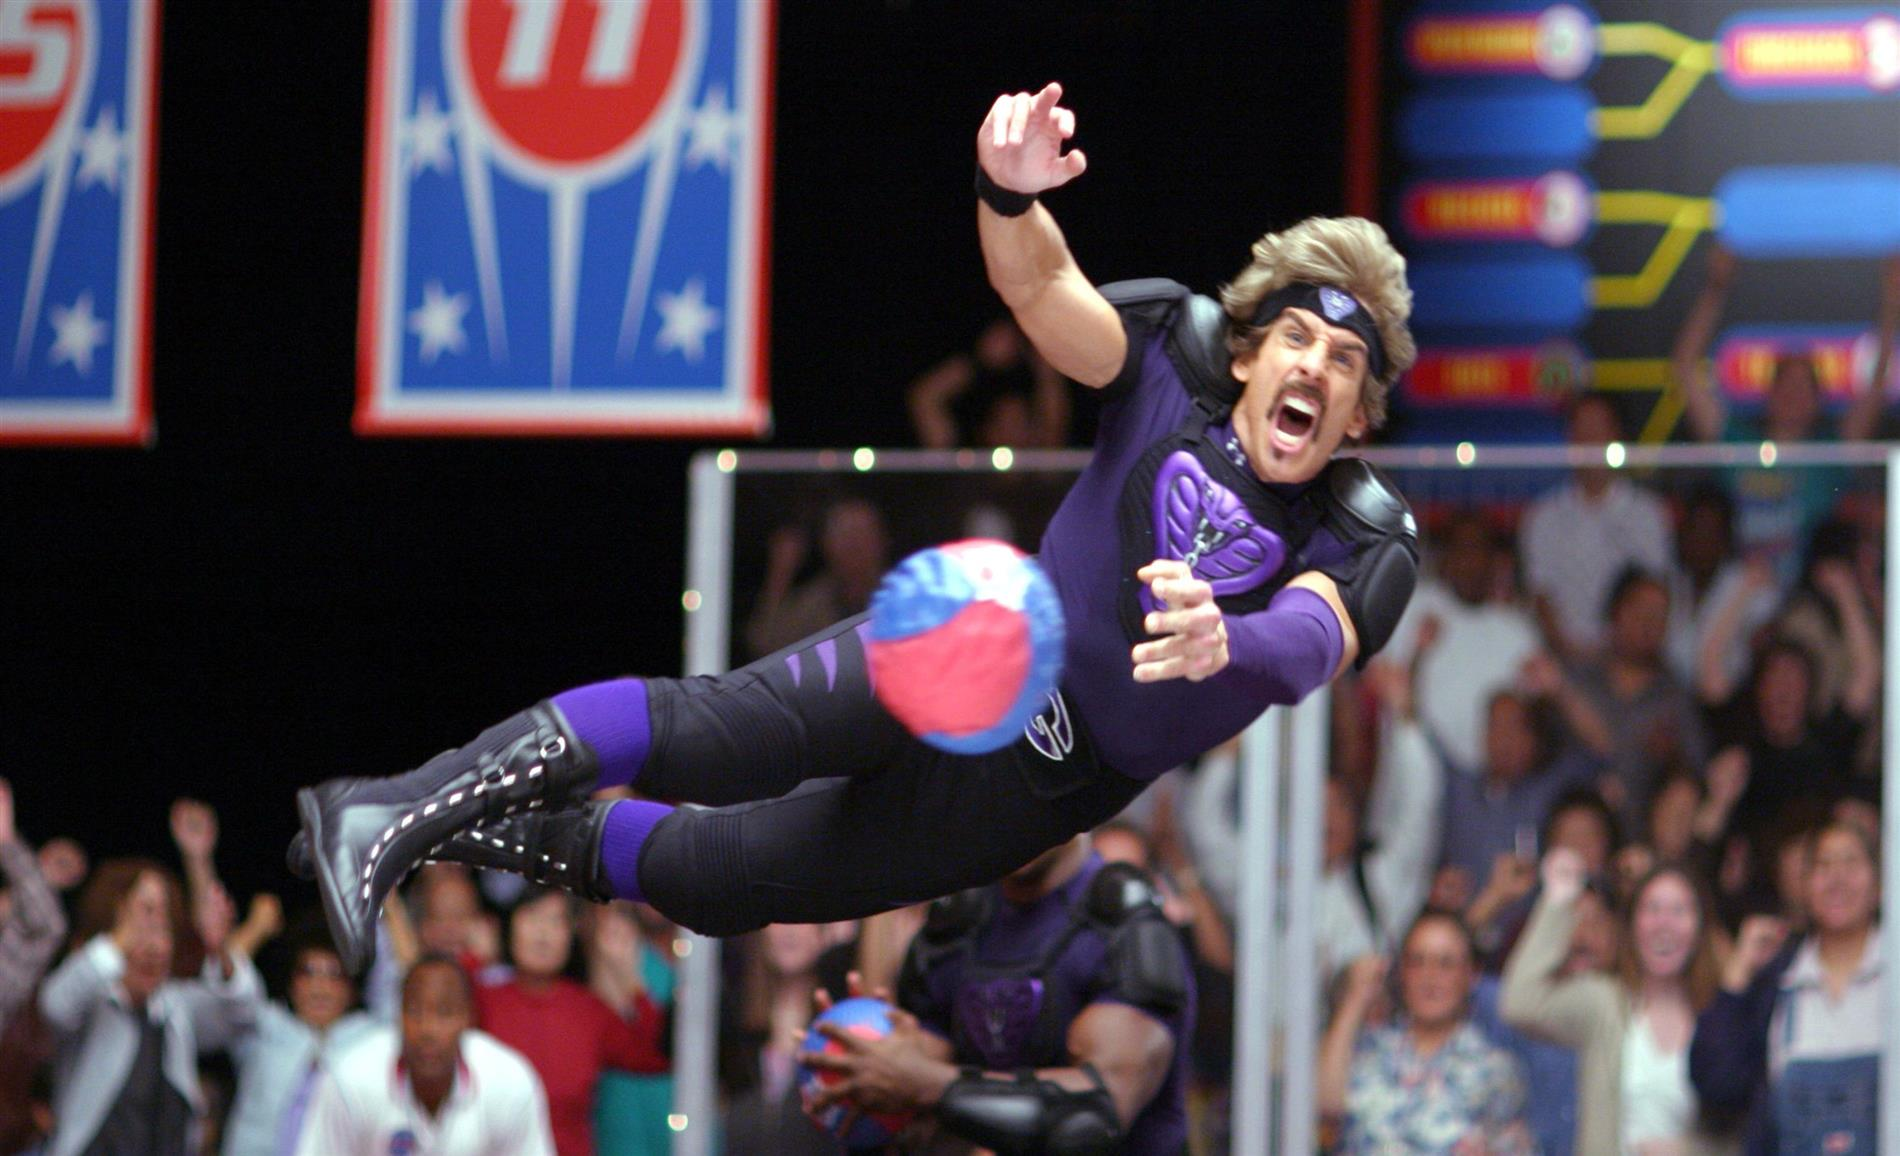 Ultimate Dodgeball Day 19th June